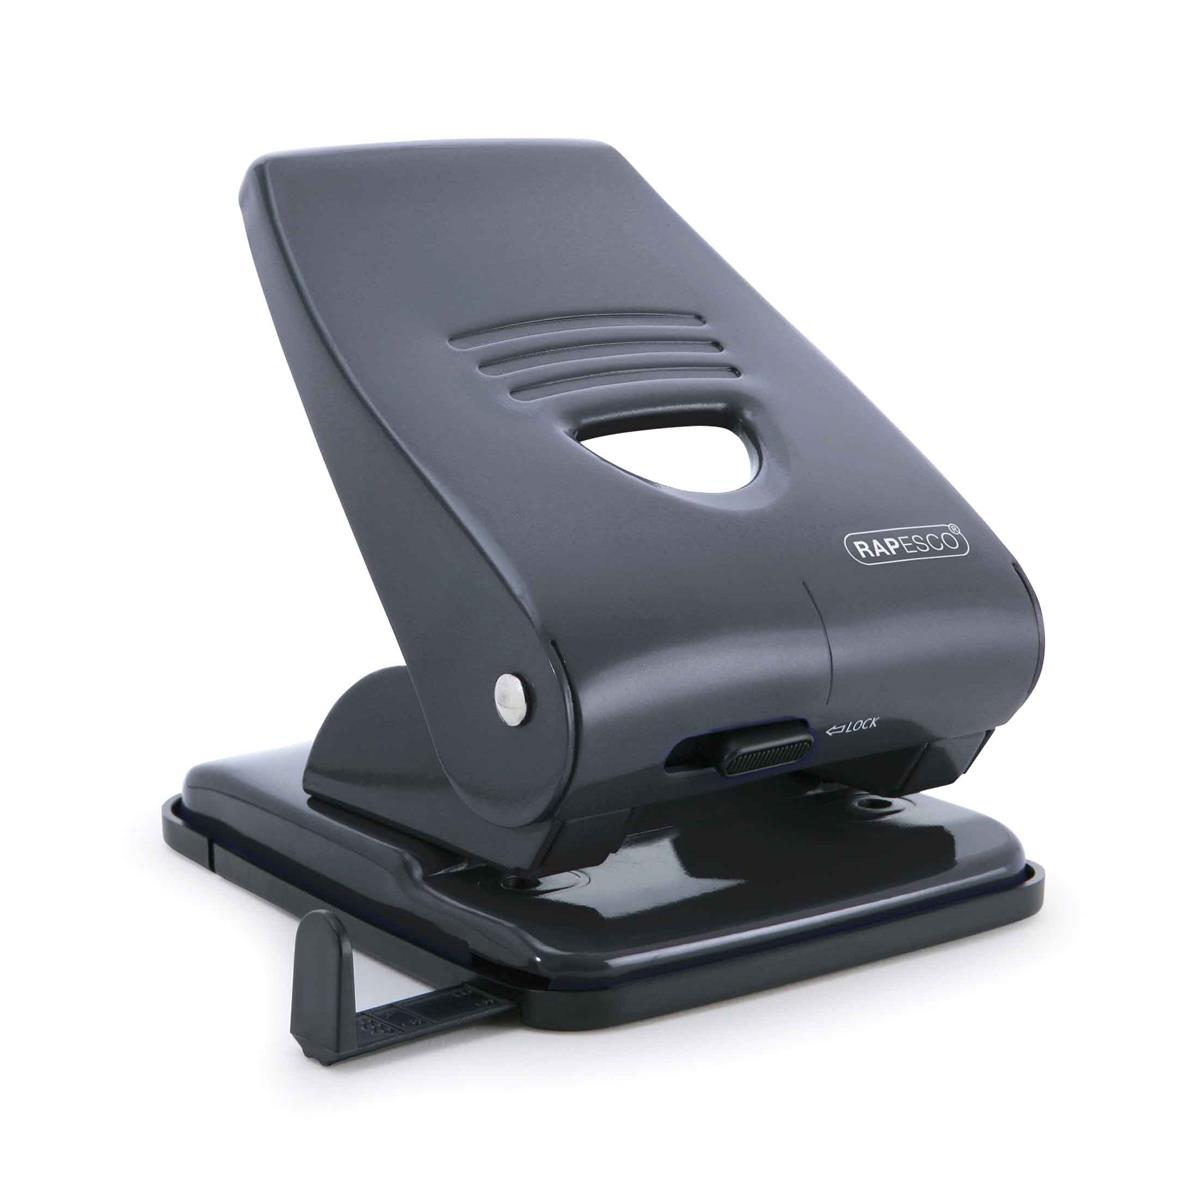 Image for Rapesco 835M Punch 2-Hole Metal Heavy-duty with Lock-down Handle Capacity 40x 80gsm Black Ref PF800AB1